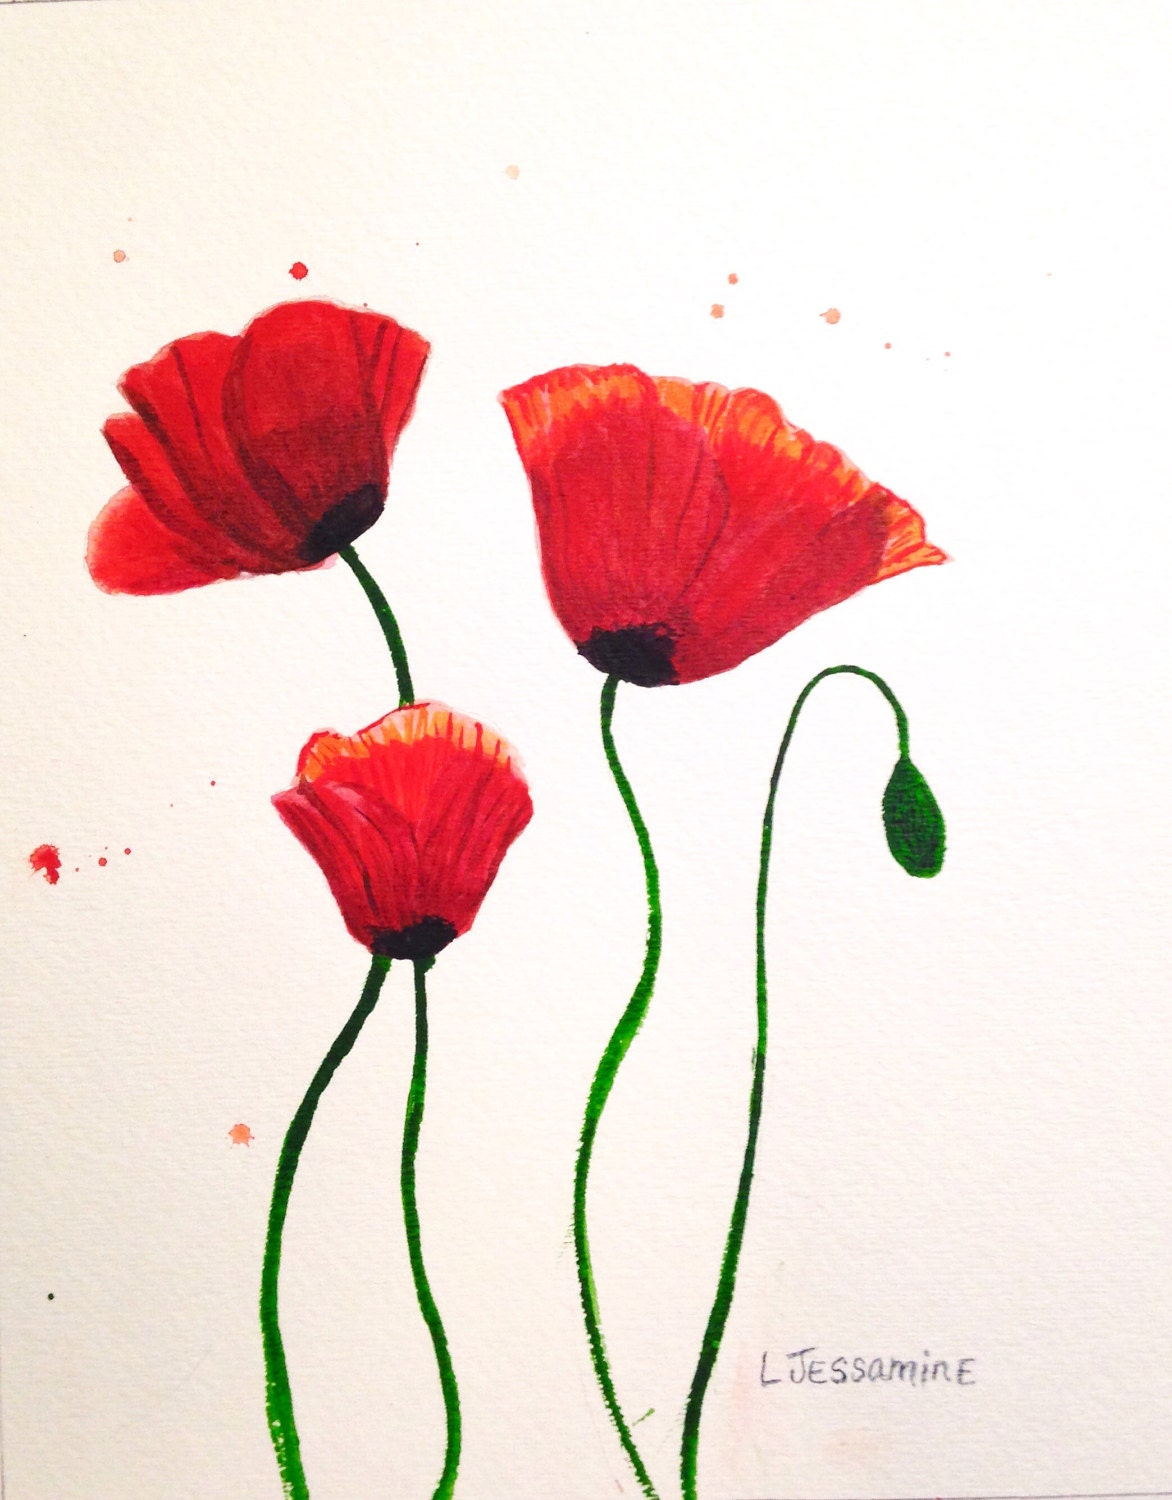 Red poppy original watercolor painting flower painting red flowers red poppy original watercolor painting flower painting red flowers wall art red and white poppy flower poppy flowers 8x10 mightylinksfo Image collections